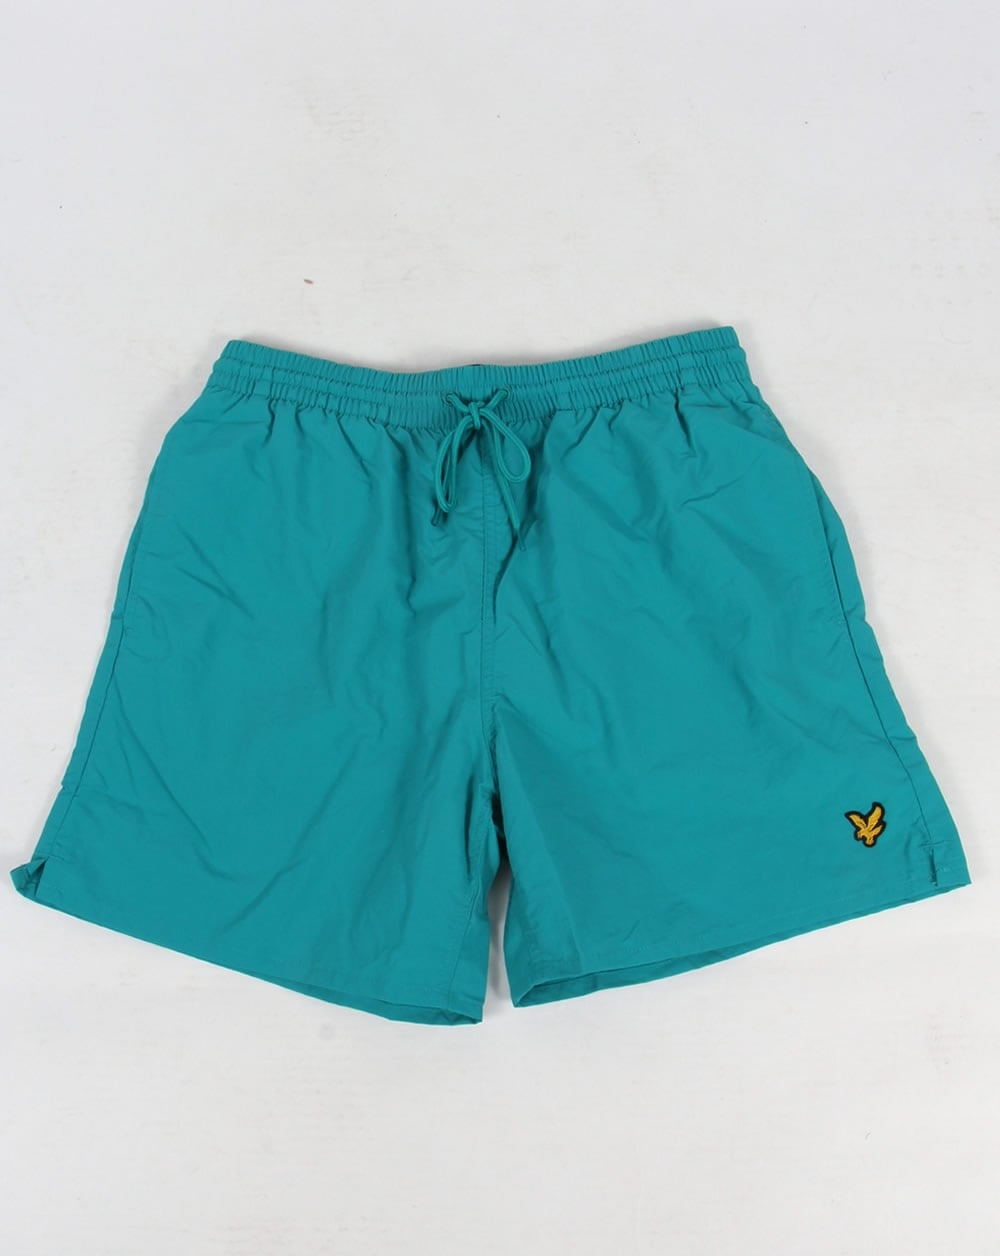 dd60a36feaf5c Lyle and Scott Lyle And Scott Plain Swim Shorts Aqua Green